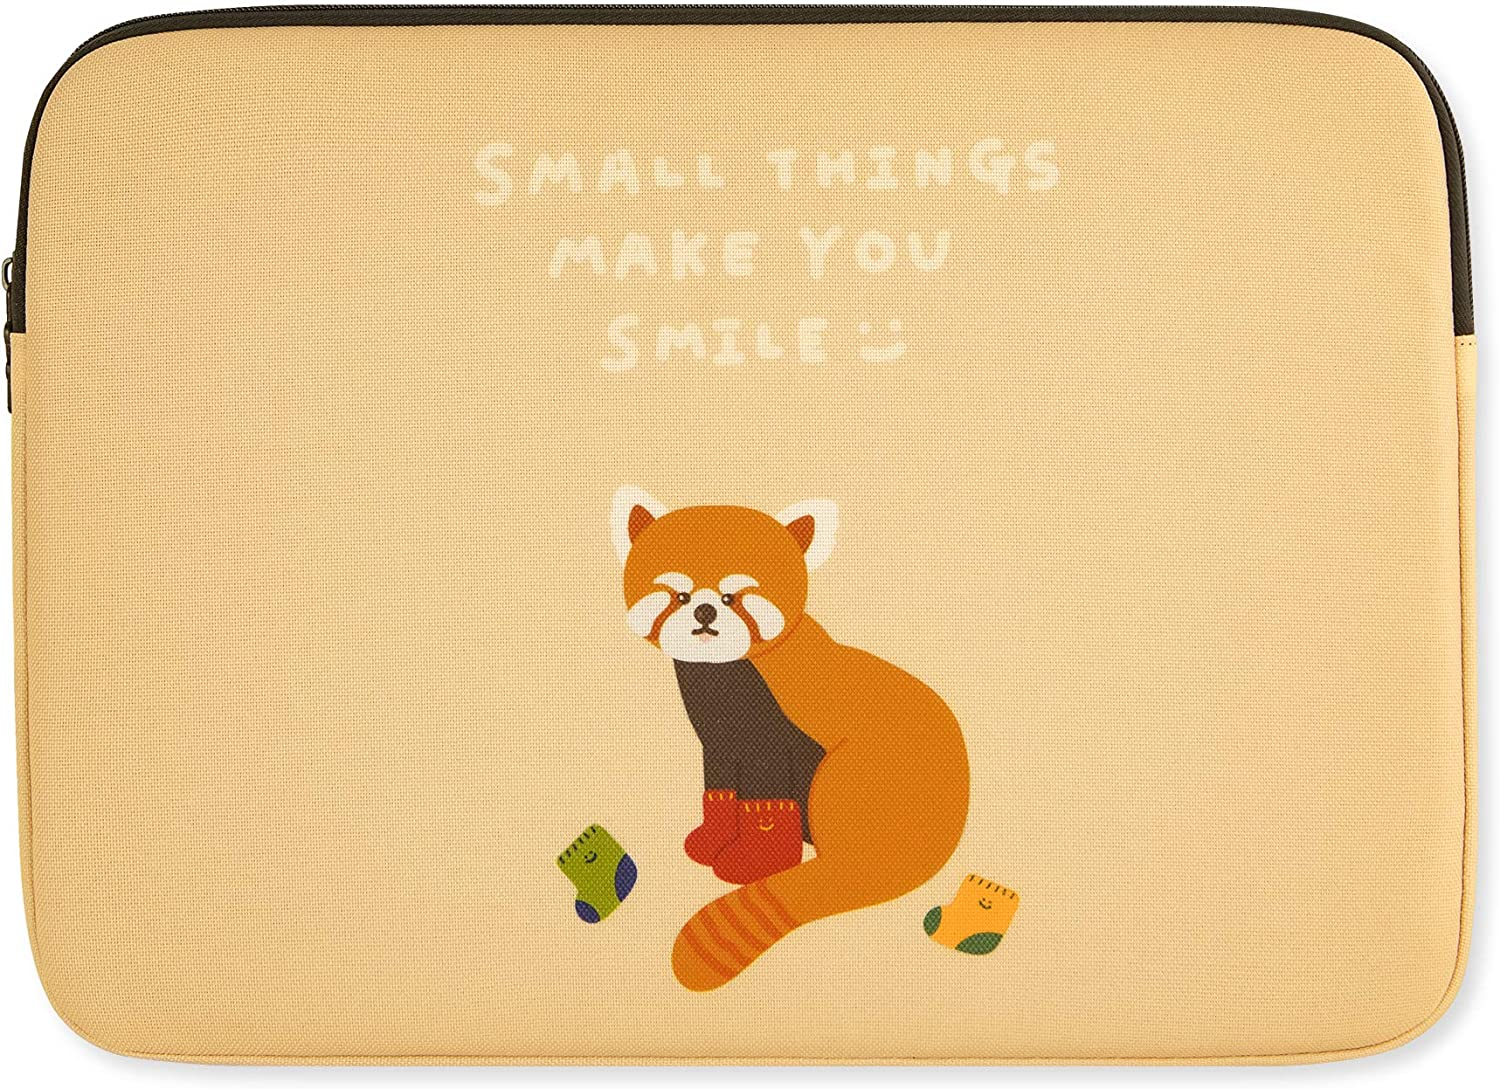 Artist Copyright Design Laptop Sleeve for MacBook Pro 15-16 inch LESSERHAPPINESS 15 inch